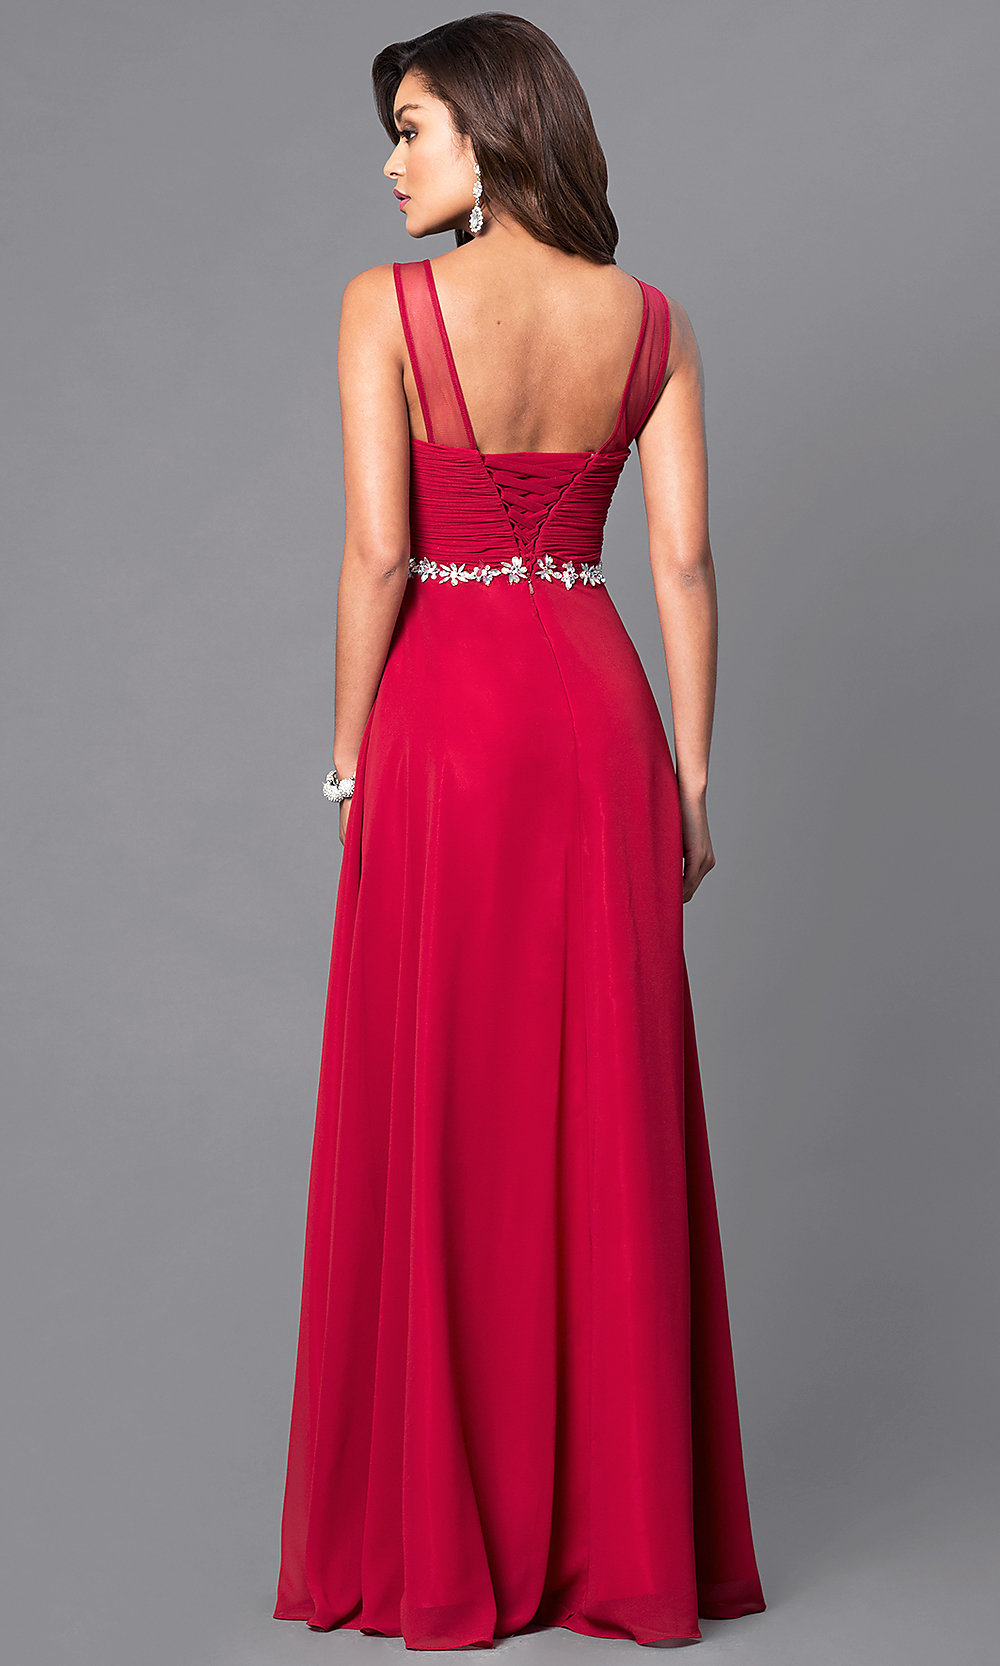 Corset Back Ruched Long Prom Dress Promgirl